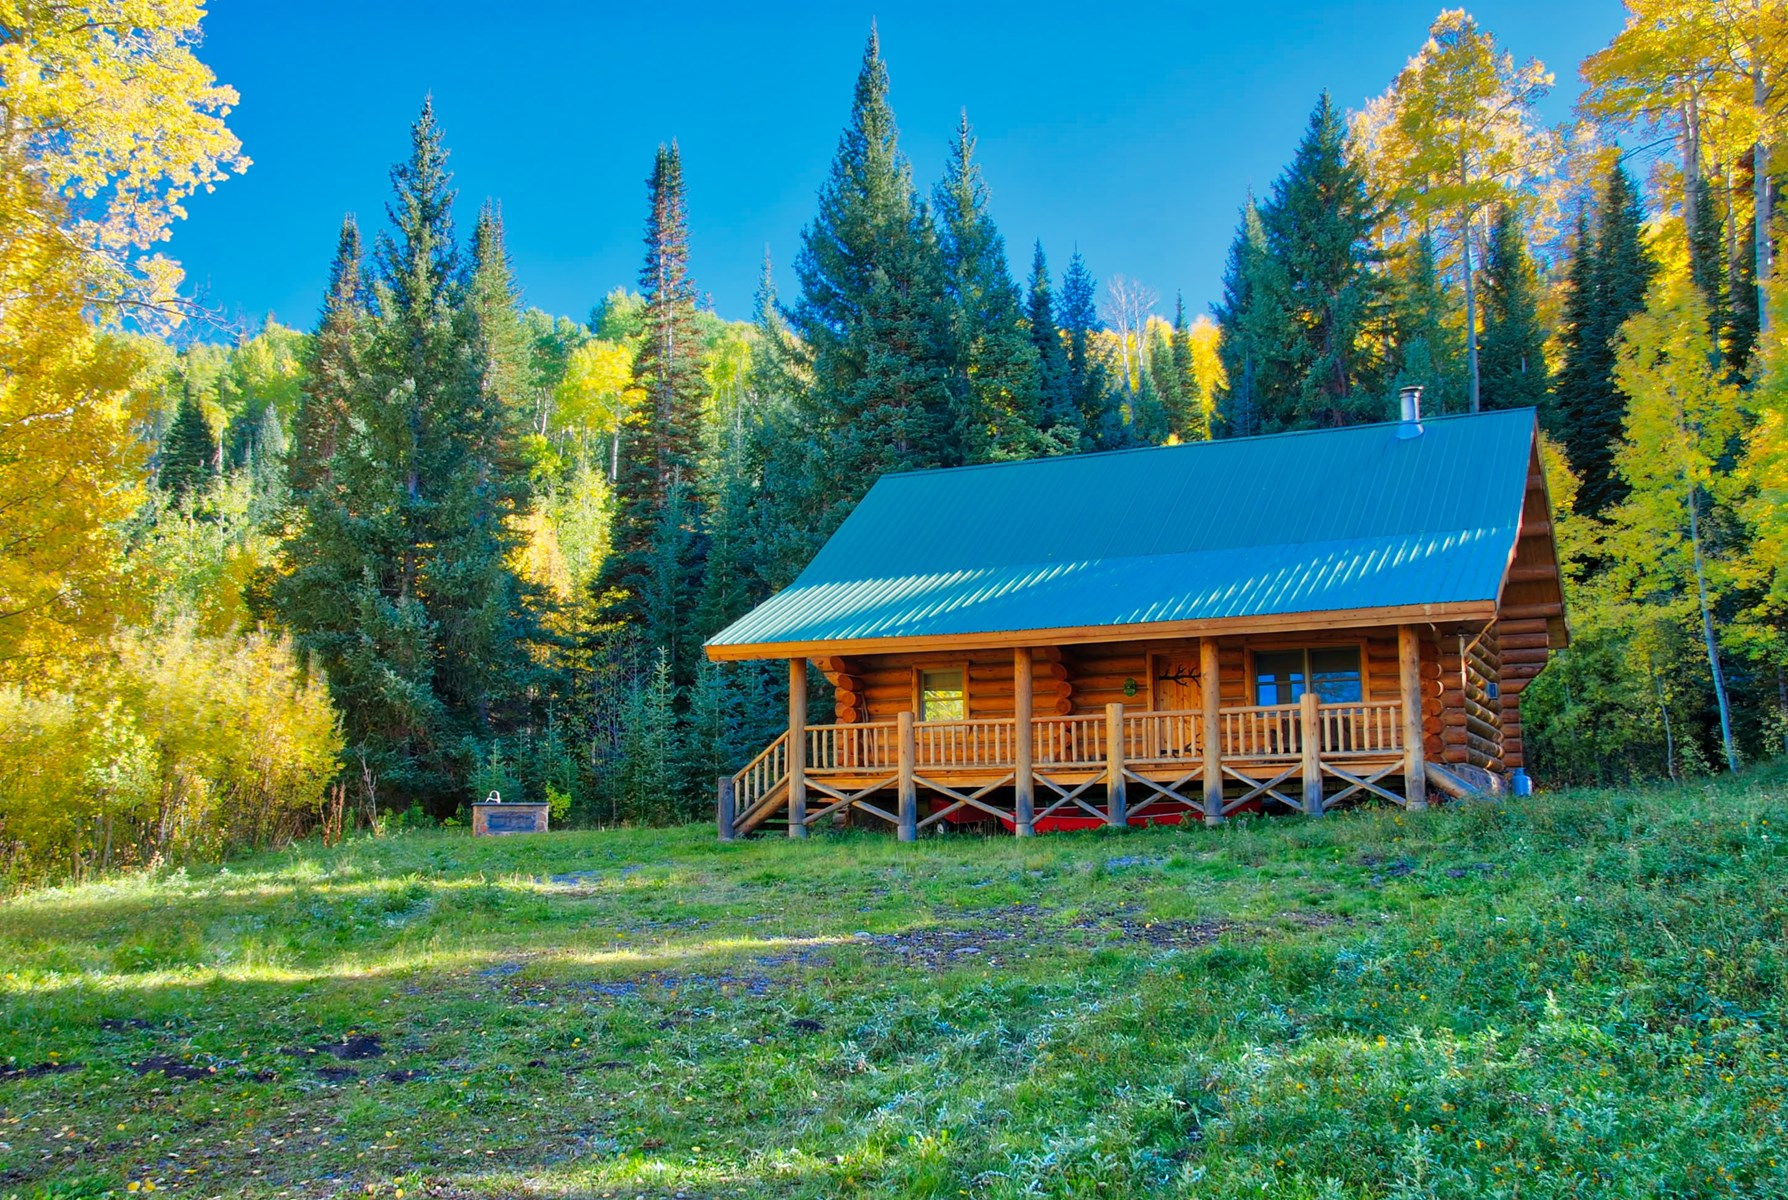 Log Cabin For Sale in Western Colorado with Acreage